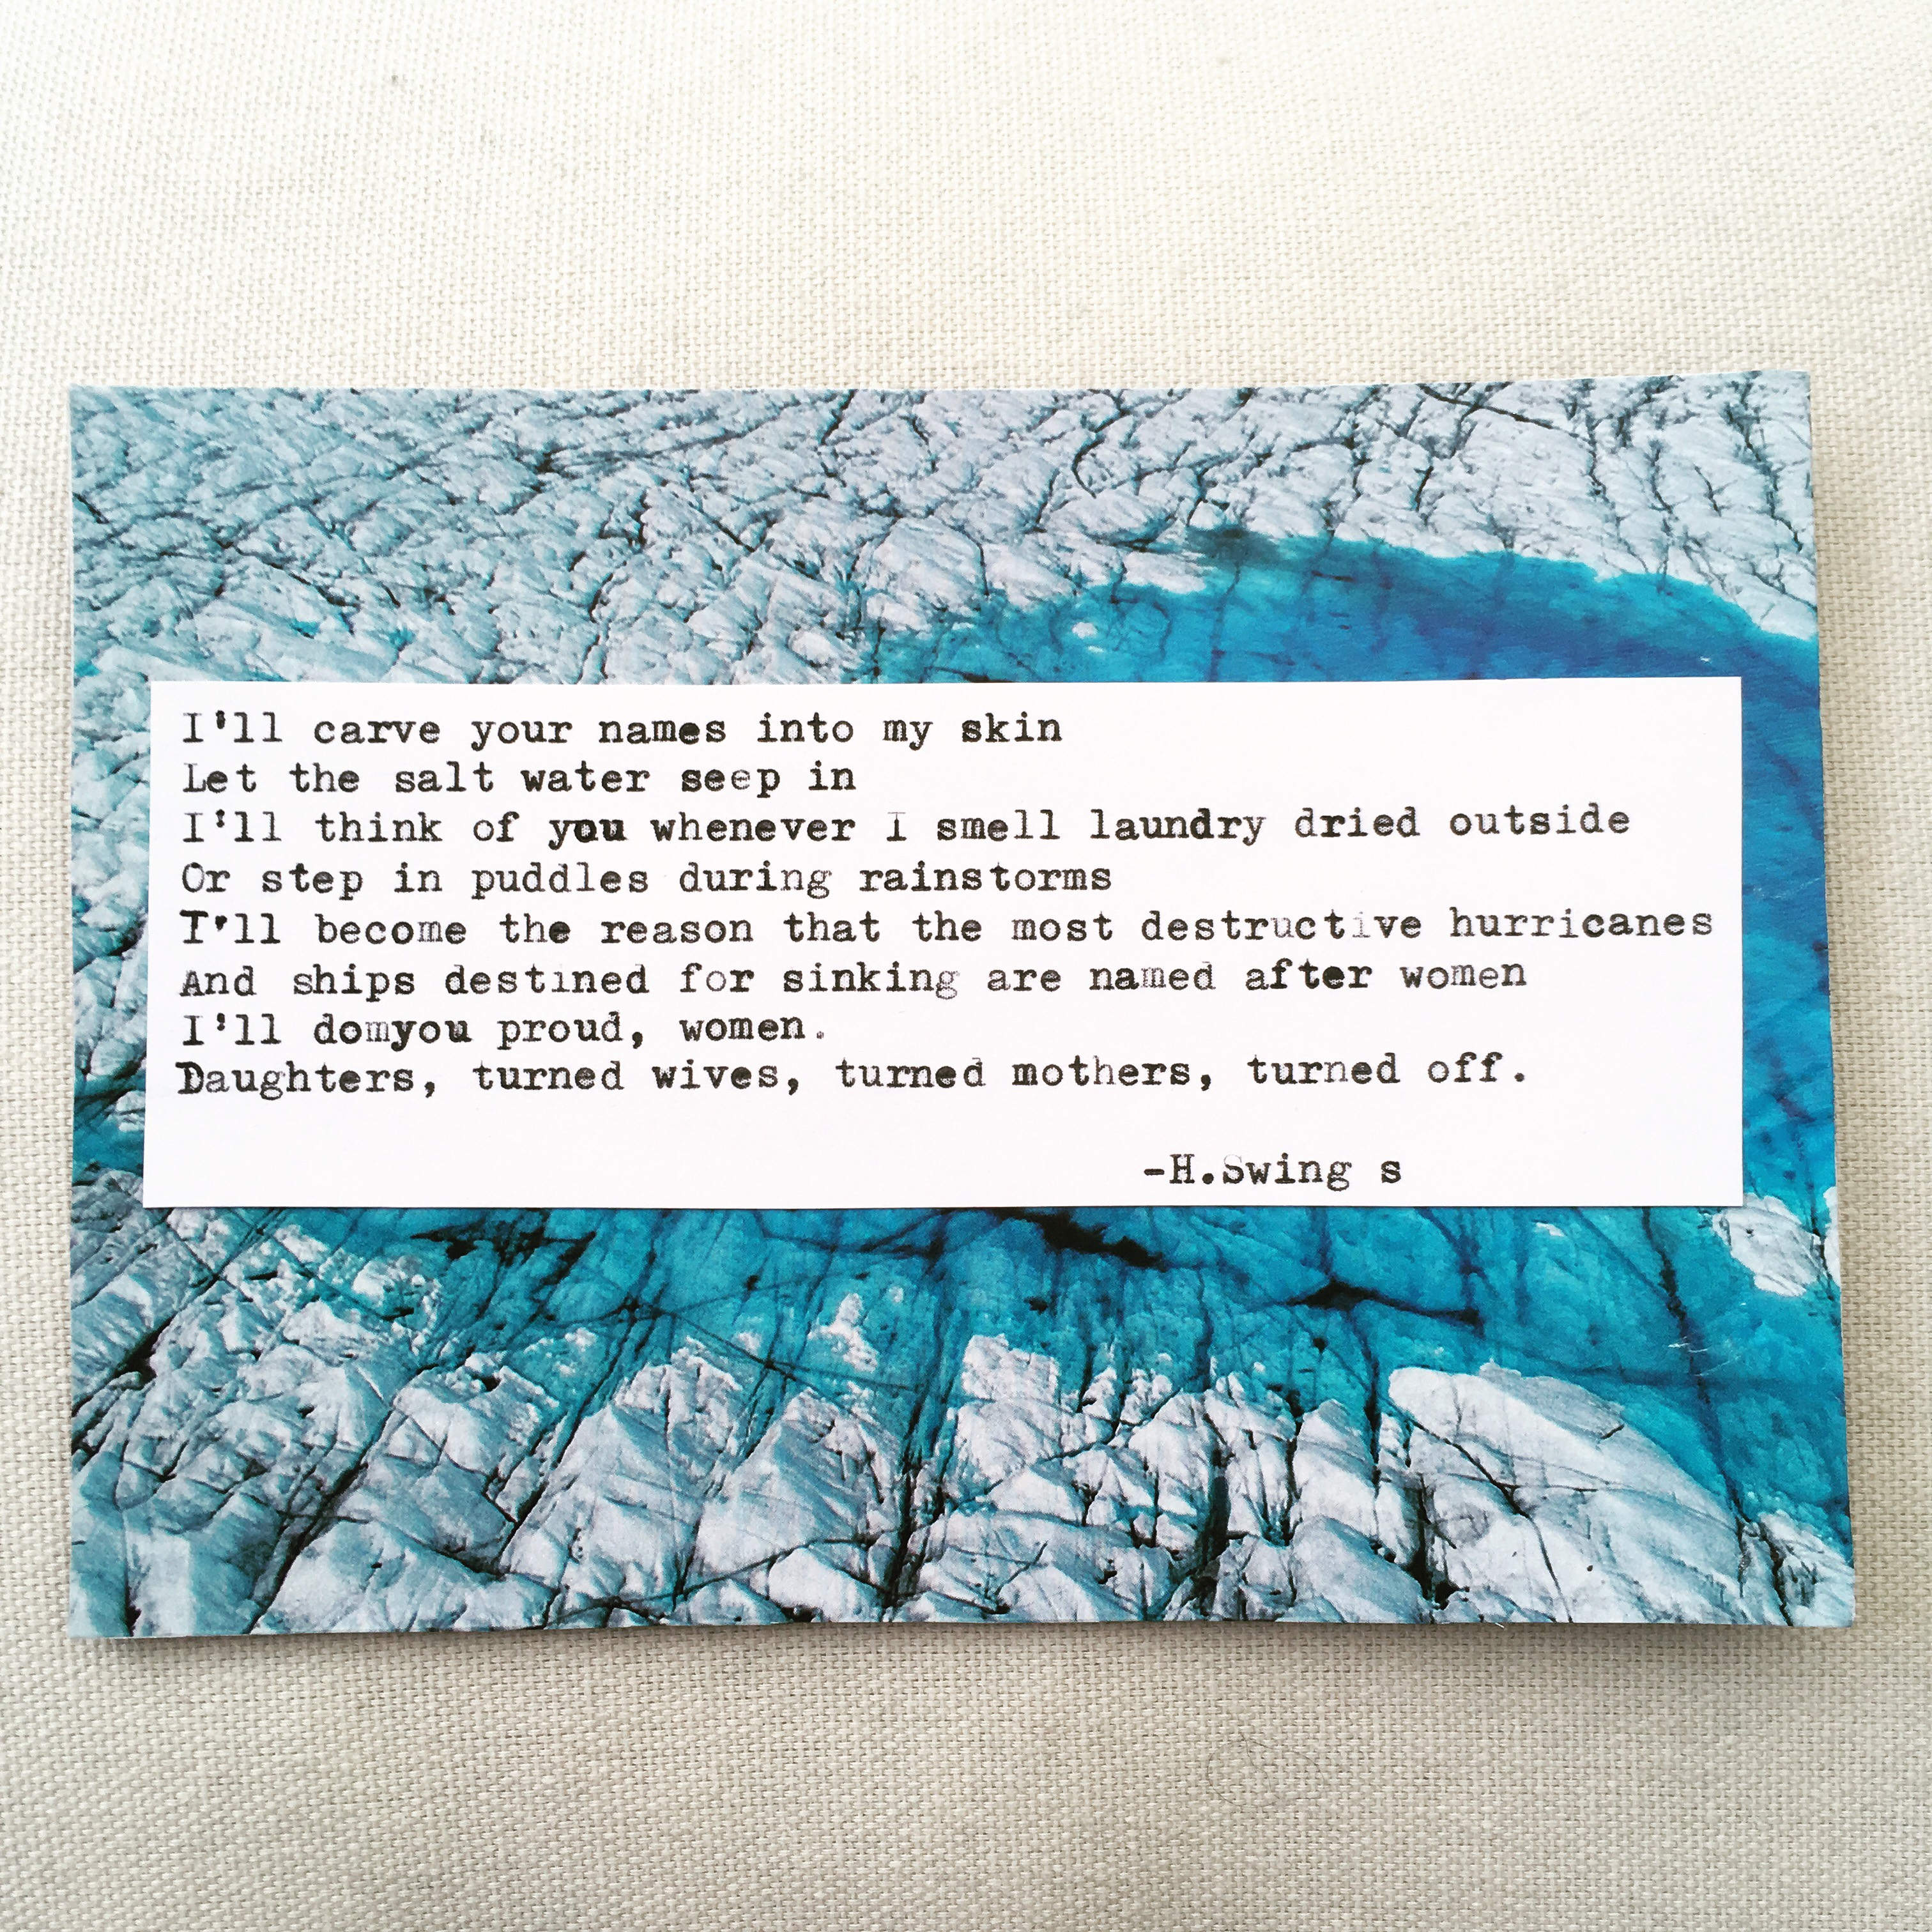 excerpt from 'Glaciers'